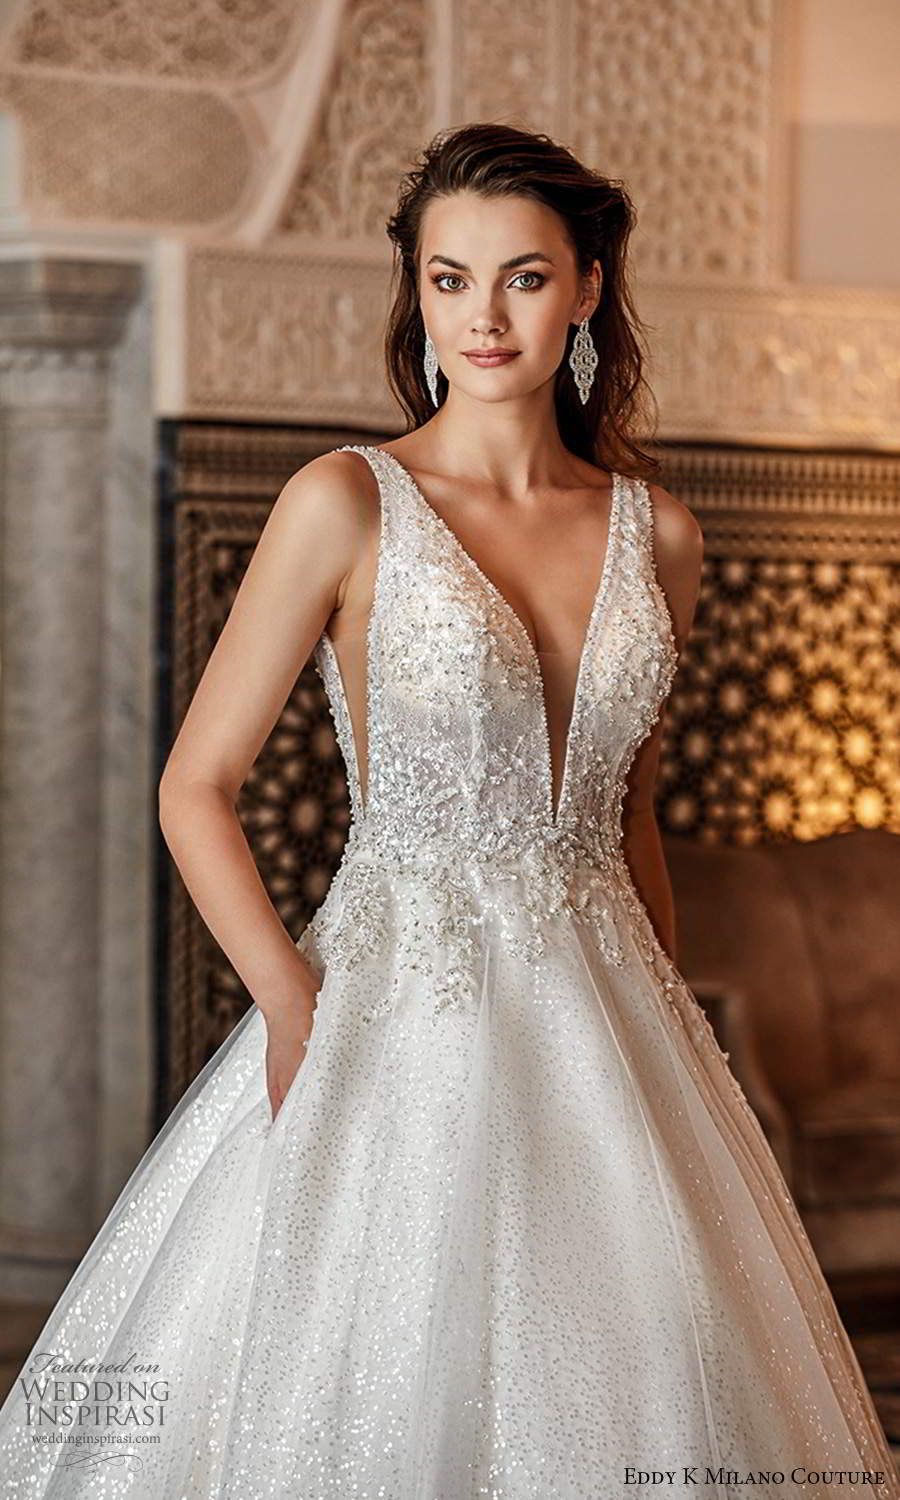 eddy k 2021 milano couture bridal sleeveless straps plunging neckline heavily embellished bodice a line ball gown wedding dress chapel train zv (12) zv